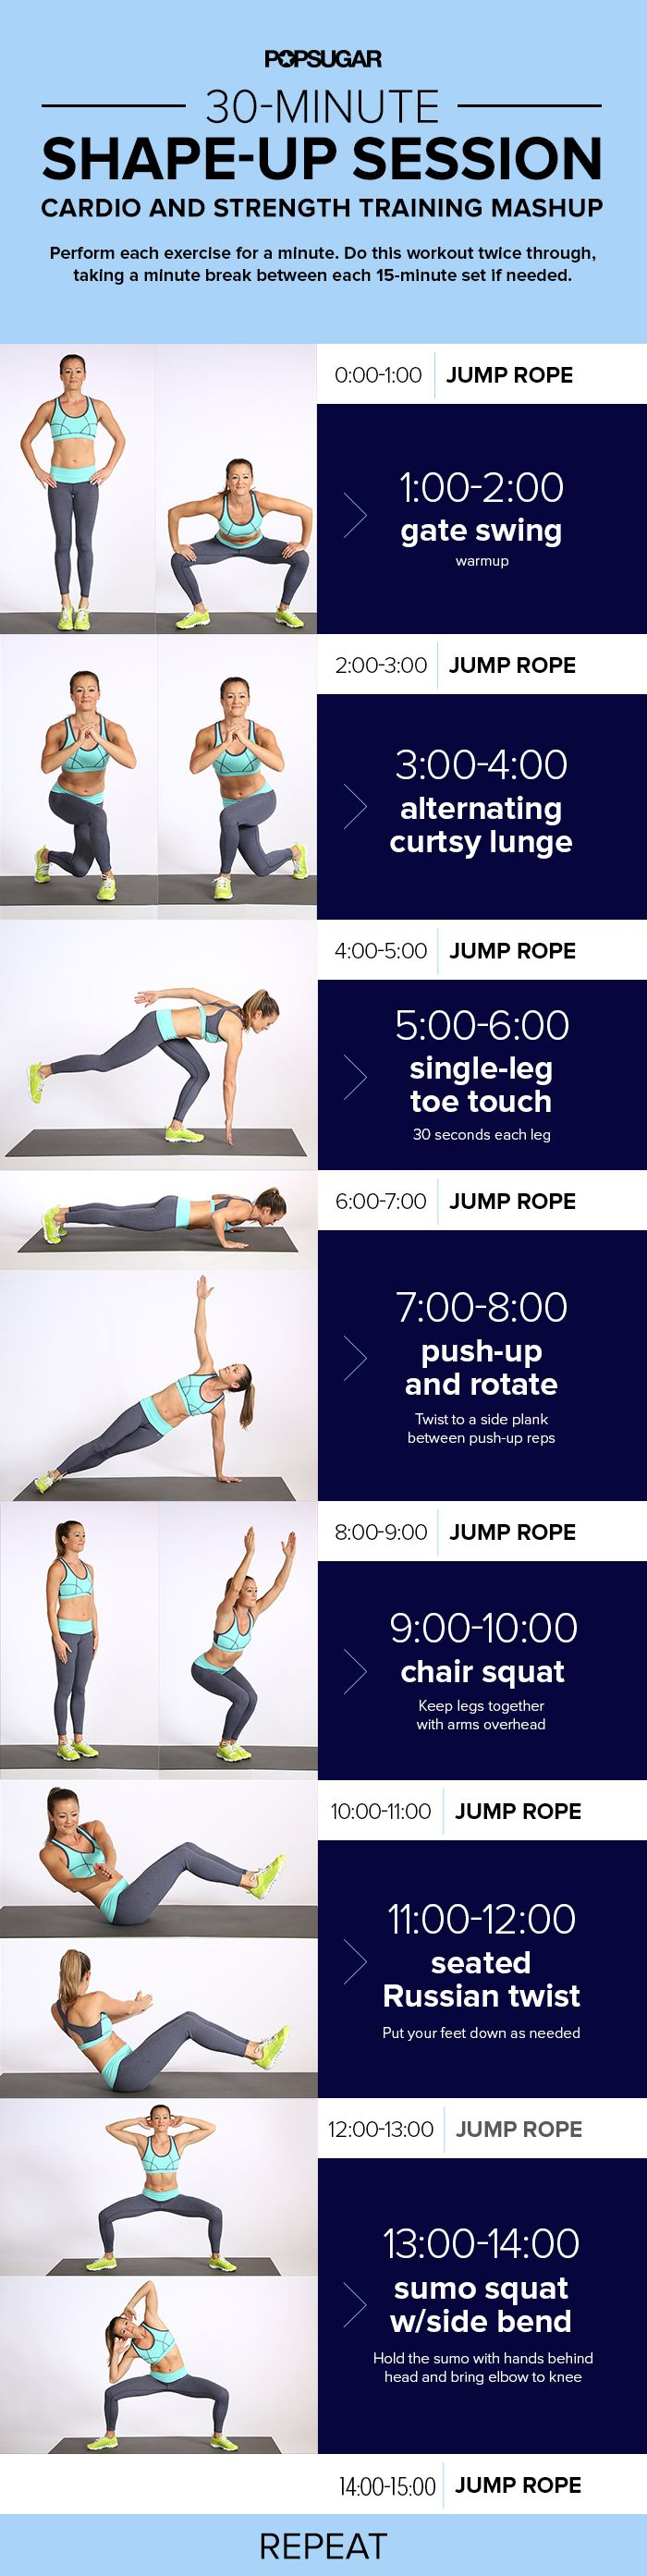 This 30-minute printable workout combines cardio and strength training for a total-body burn.